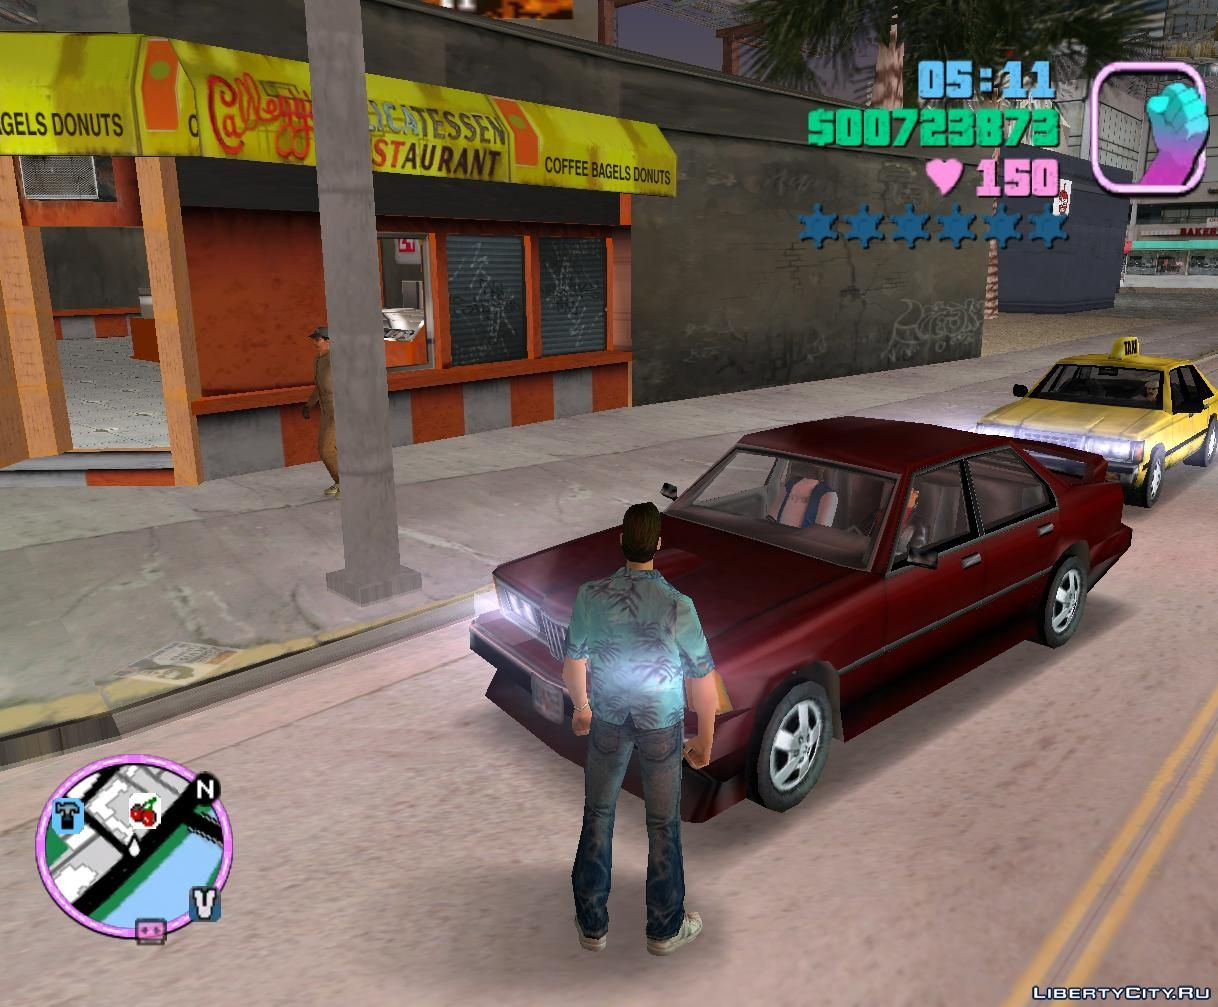 Gta vice city mod installer download for windows 7  EARNS-TEMPTED GA